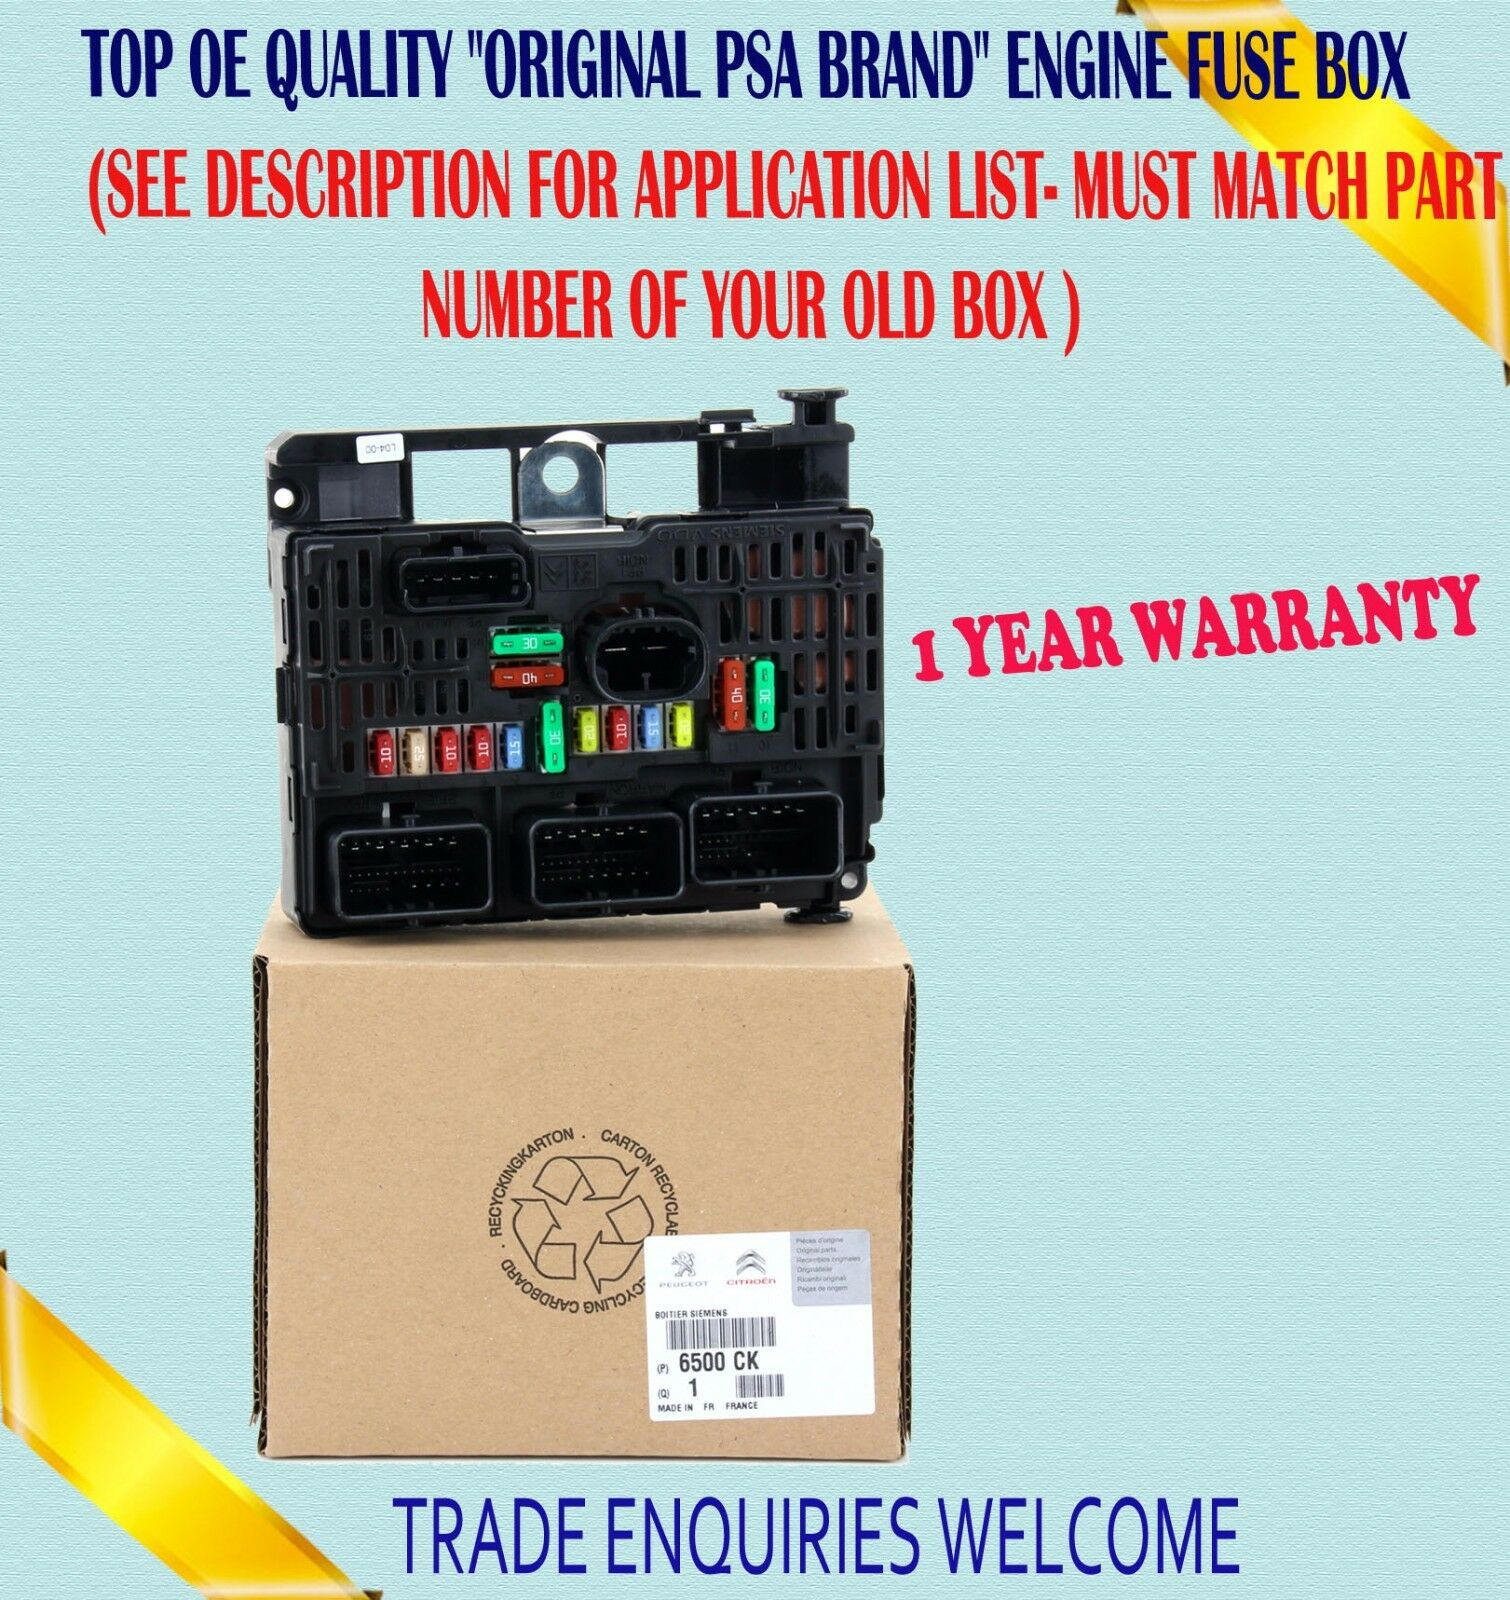 Fits Citroen C4 C5 C8 Dispatch Central Electronic Control Engine Fuse Box On 1 Of 1only 0 Available